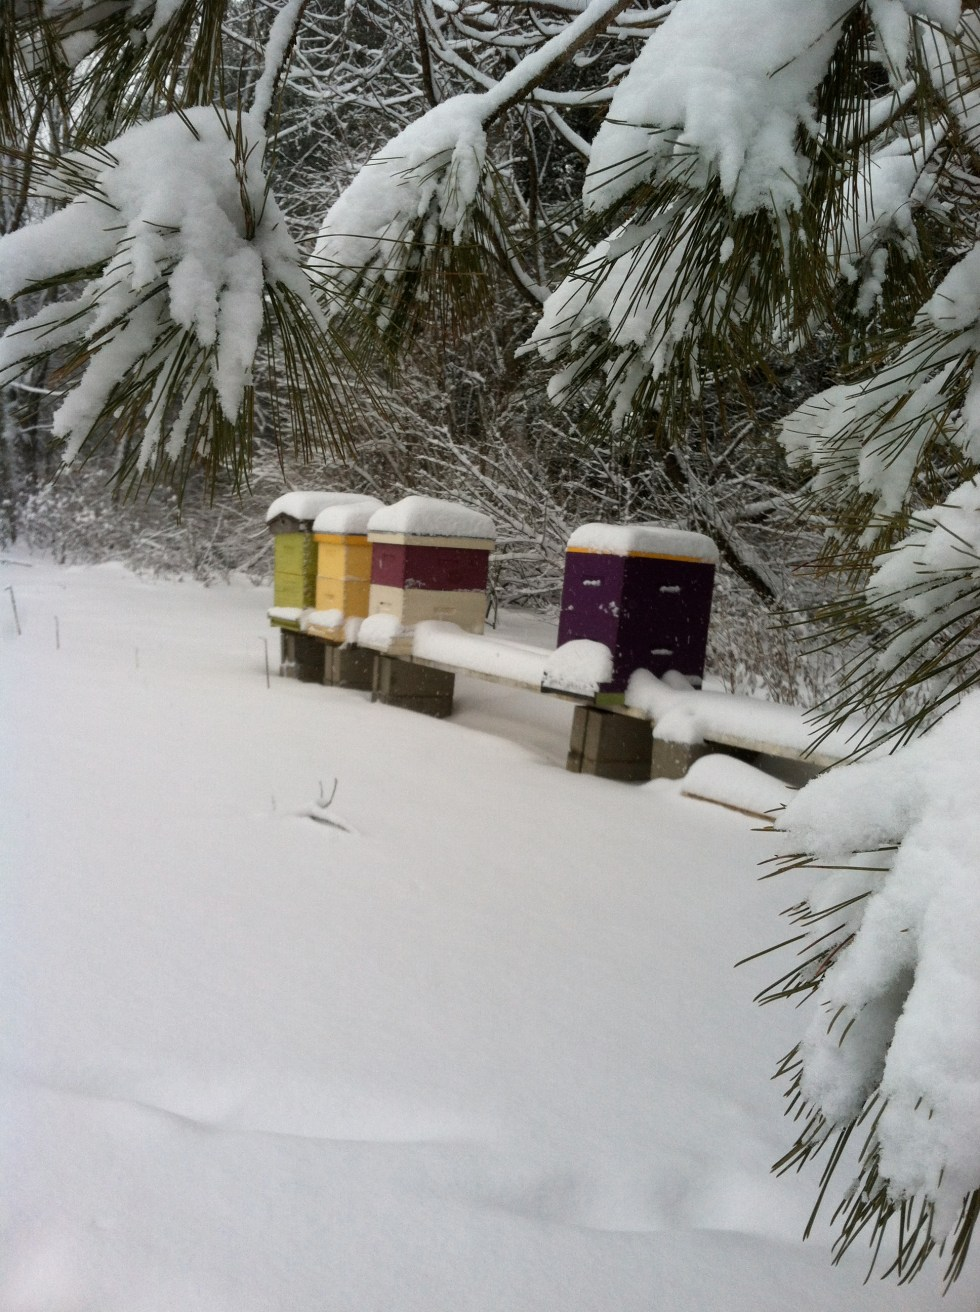 Life in a colorful box during a Vermont winter